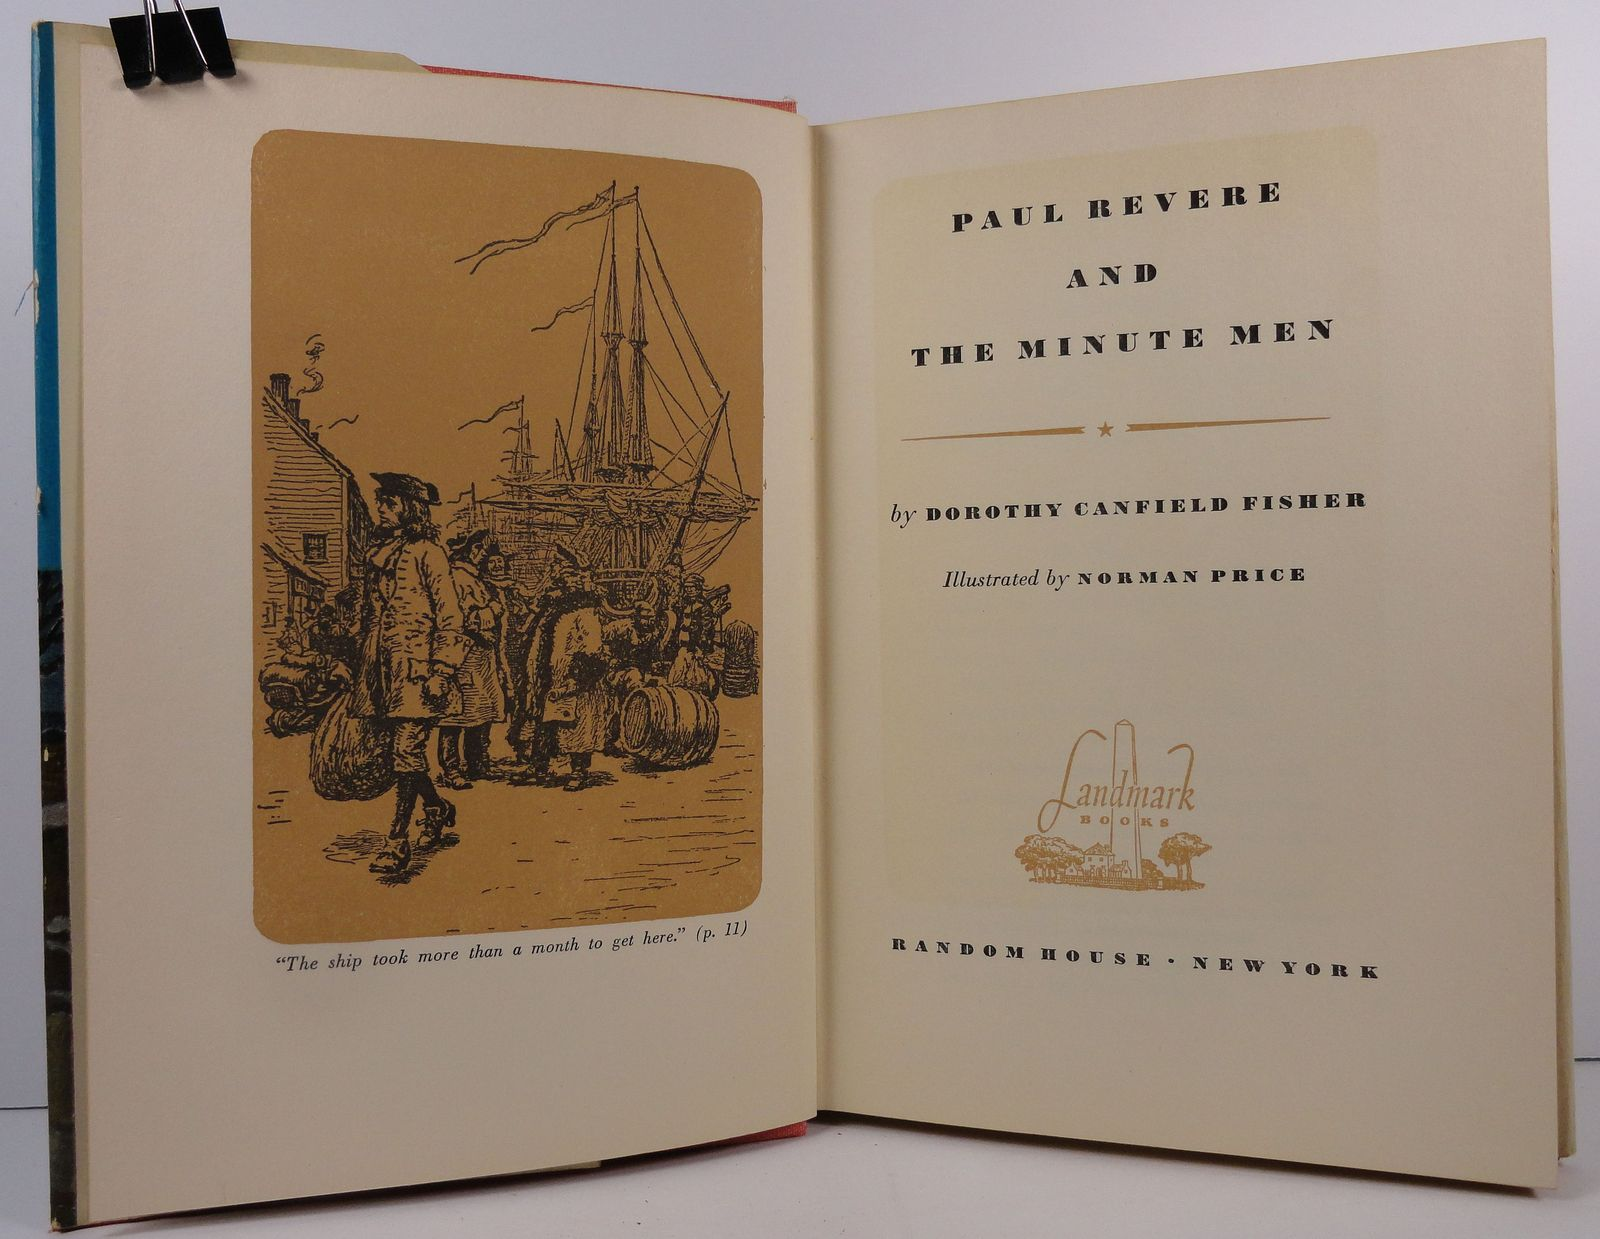 Paul Revere and the Minute Men by Dorothy Canfield Fisher